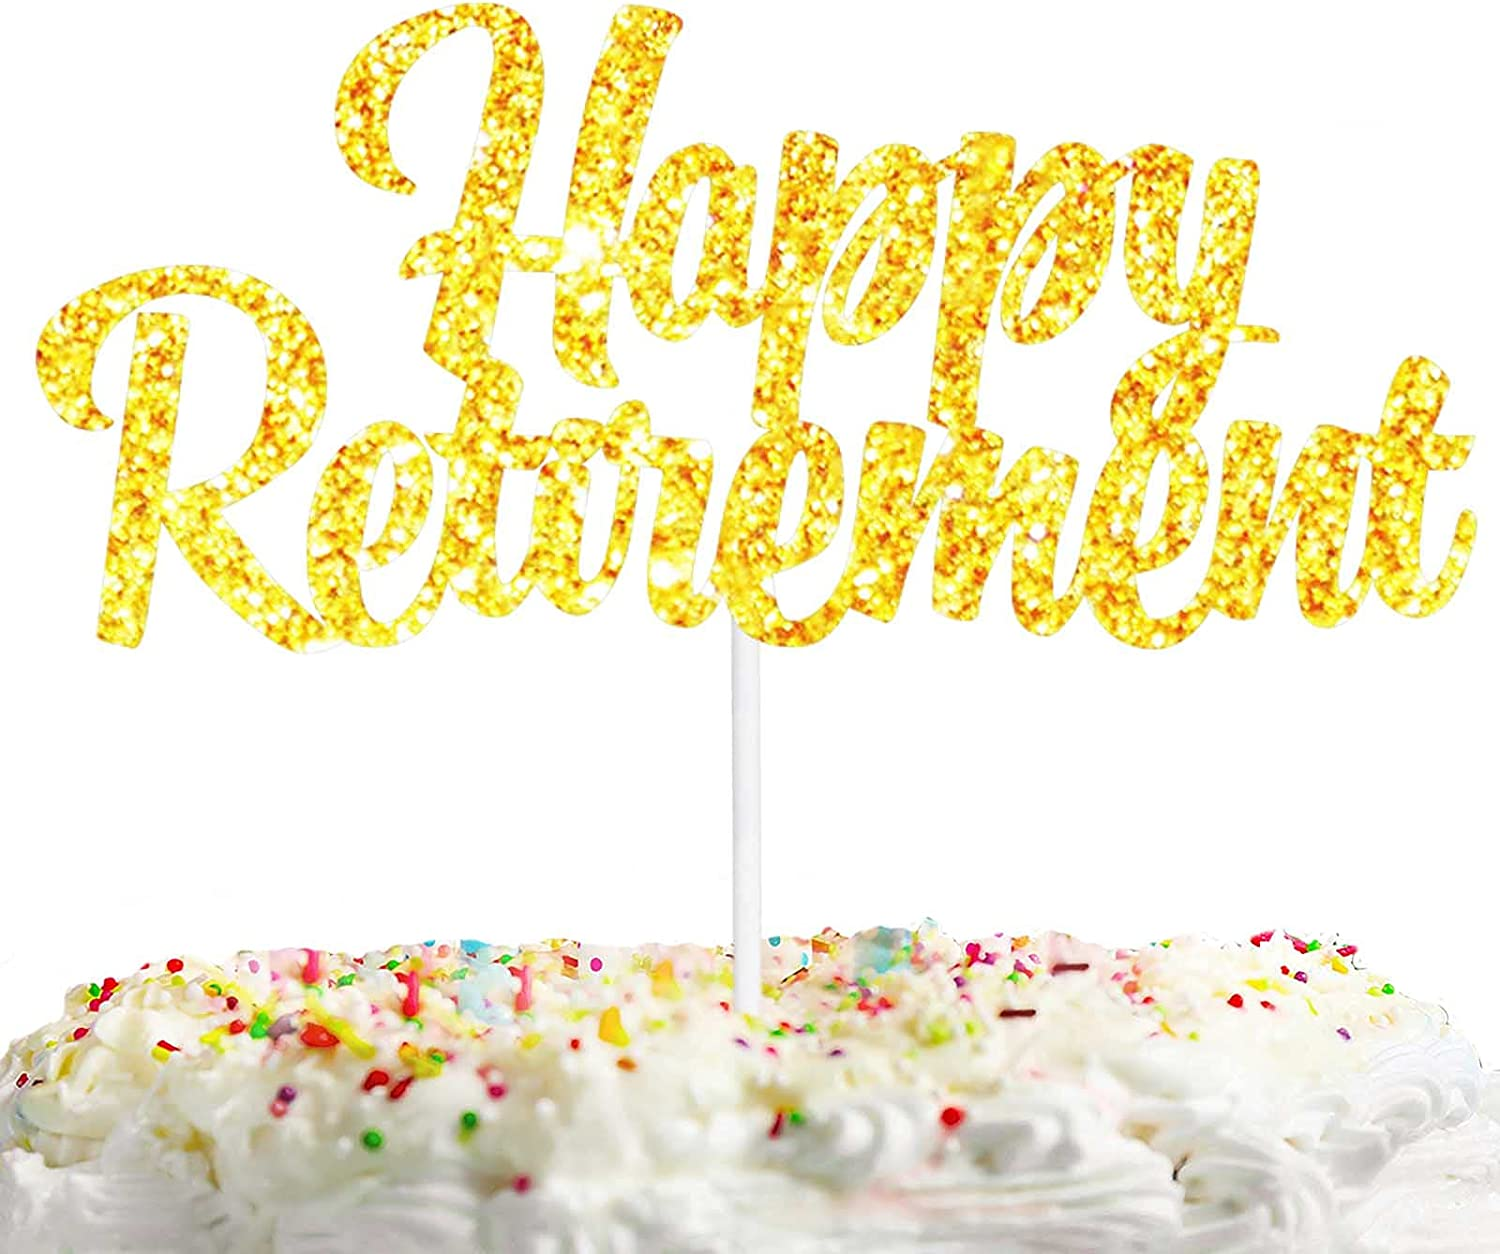 Happy Retirement Cake Topper Gold Glitter Celebrate Theme Decorations Man Woman Officially Retire Birthday Party Decor Supplies